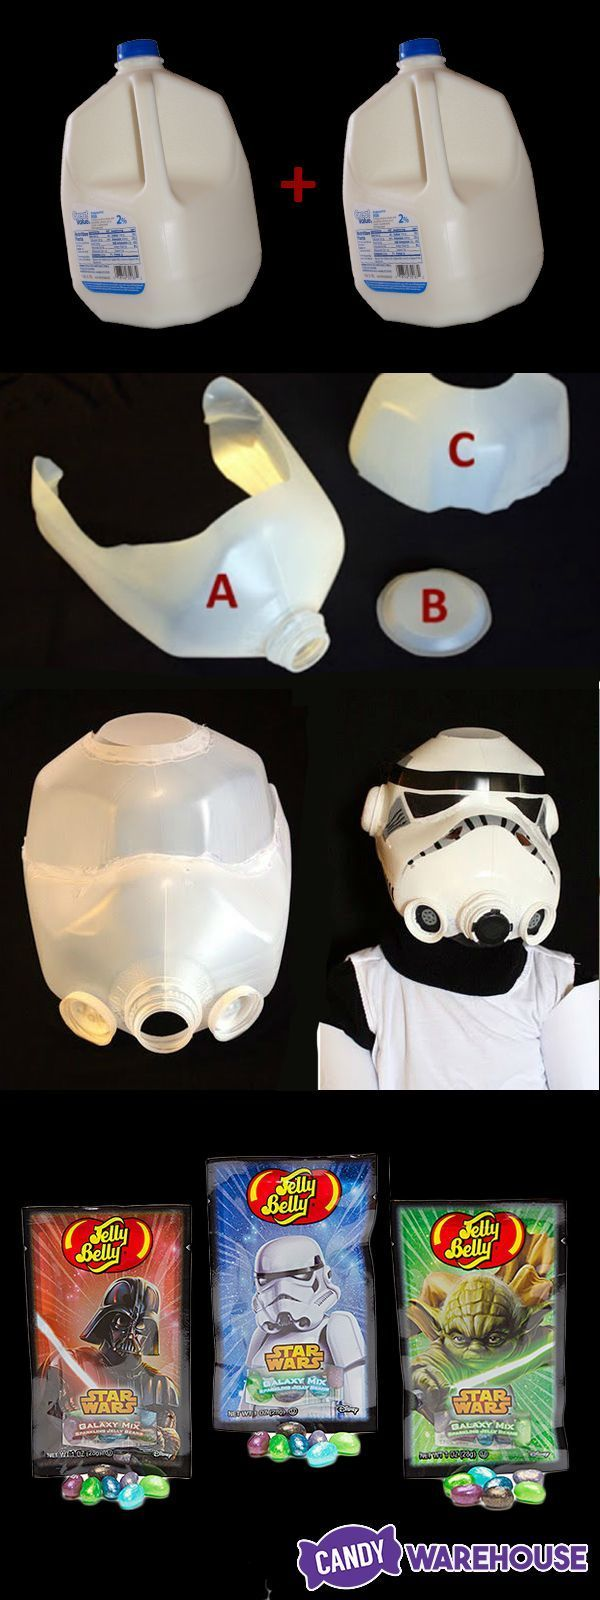 DIY Halloween stormtrooper helmet made from two empty milk gallons and some craft paint! Great for an easy homemade Halloween costume.